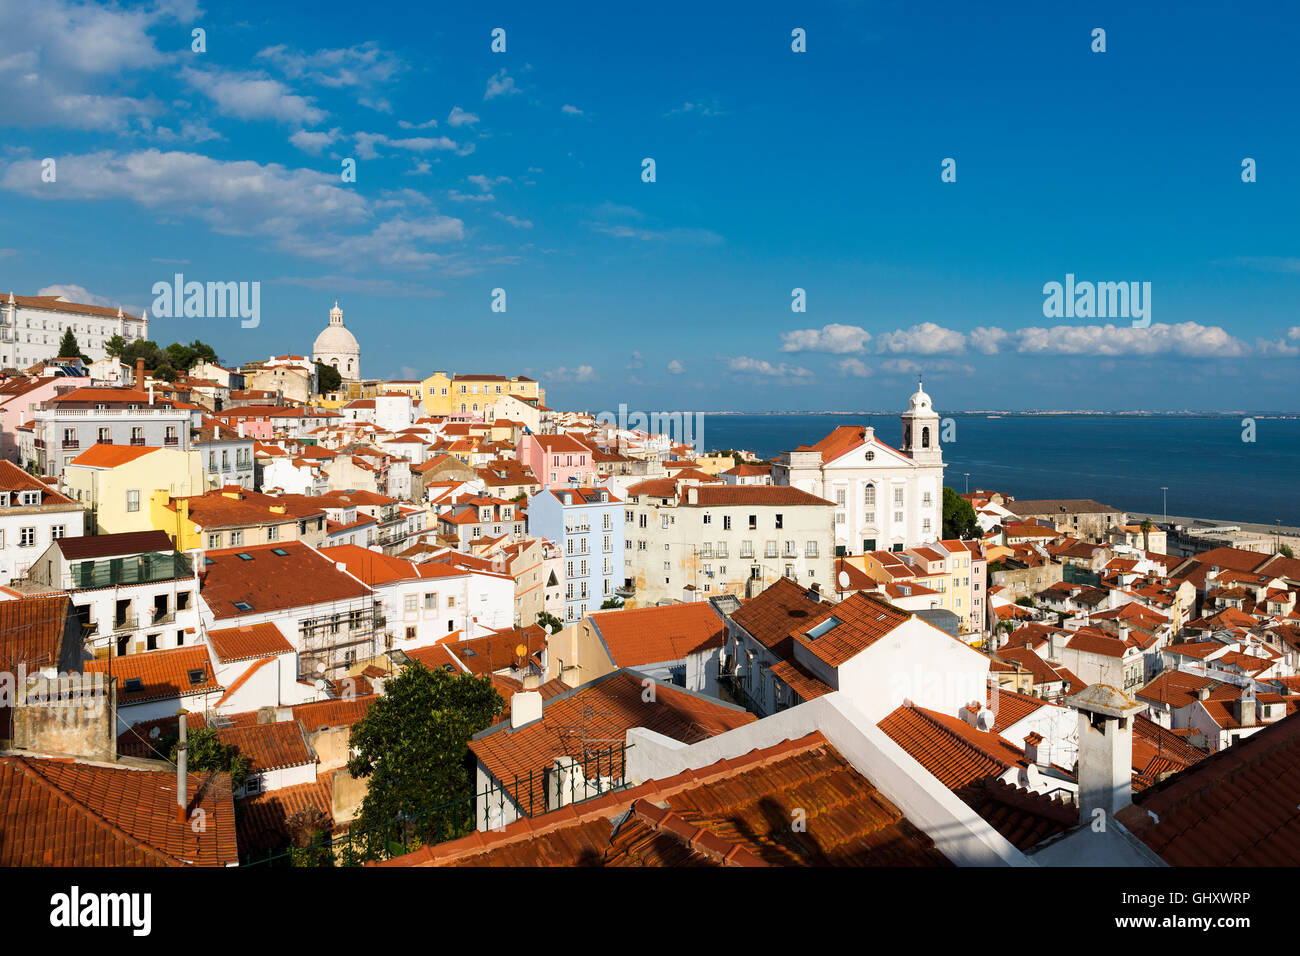 View of the Alfama neighborhood in Lisbon, Portugal from the Portas do Sol viewpoint; Concept for travel in Lisbon, - Stock Image